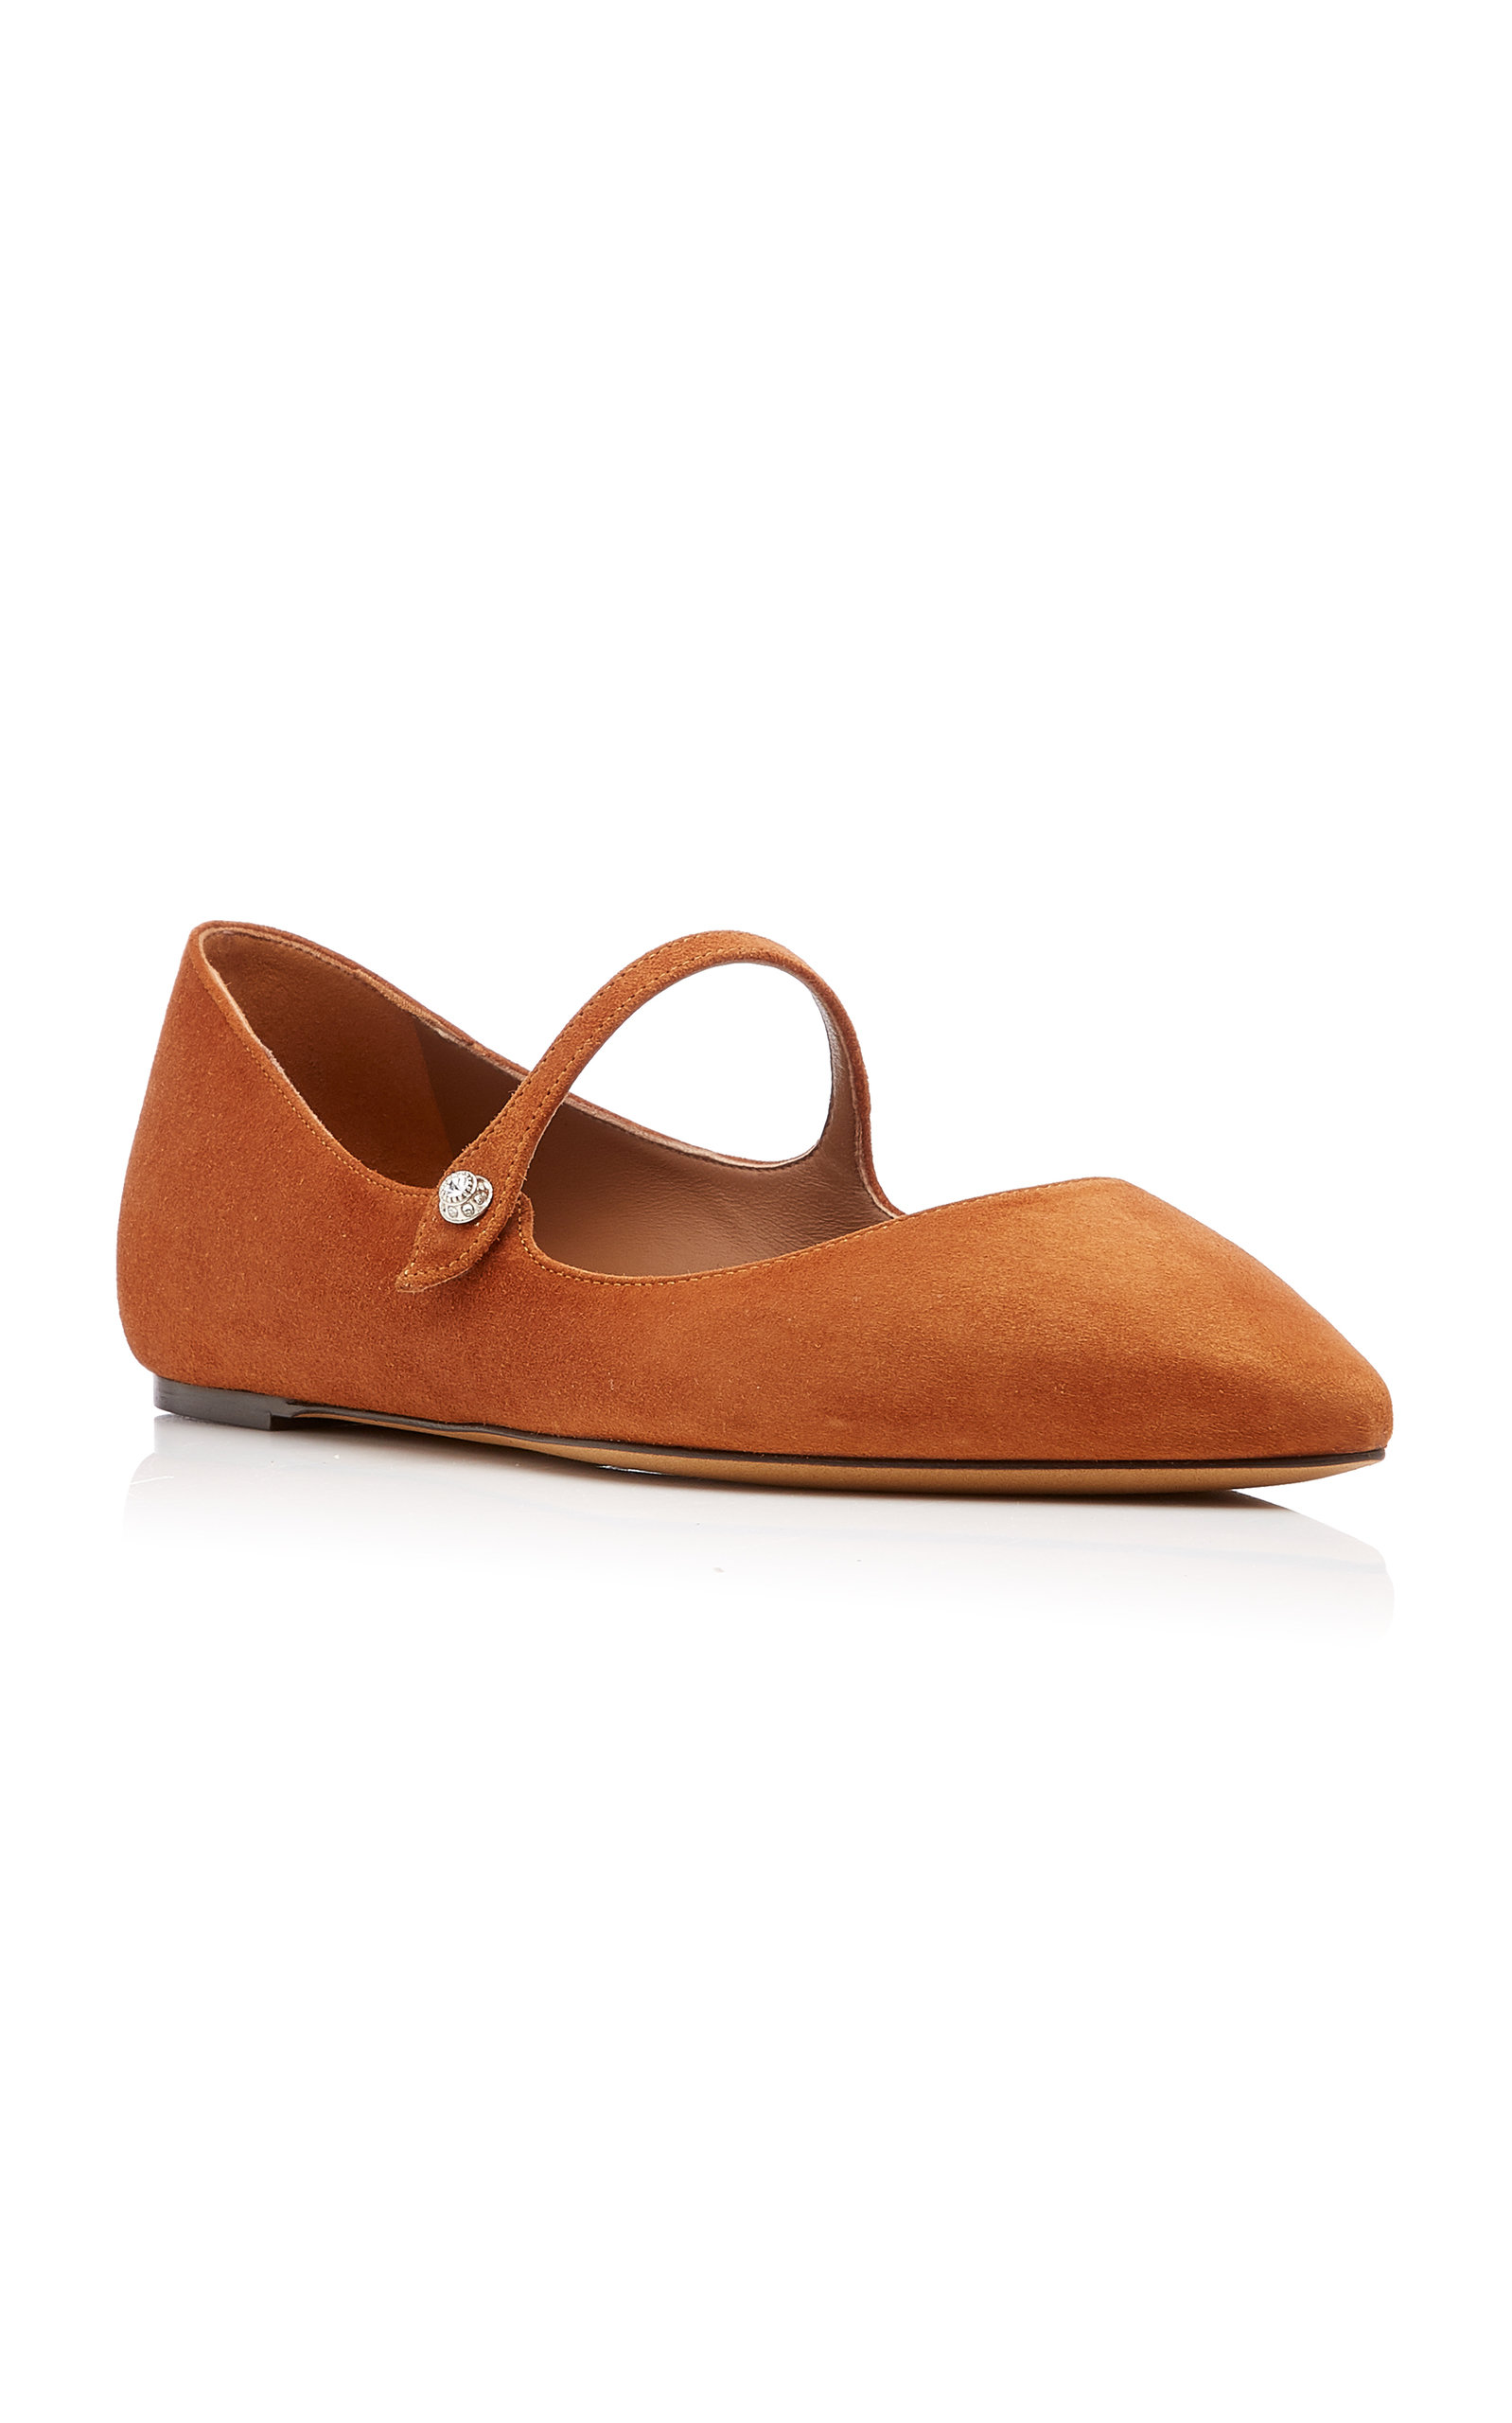 c292bfa4ad8 Hermione Suede Flats by Tabitha Simmons